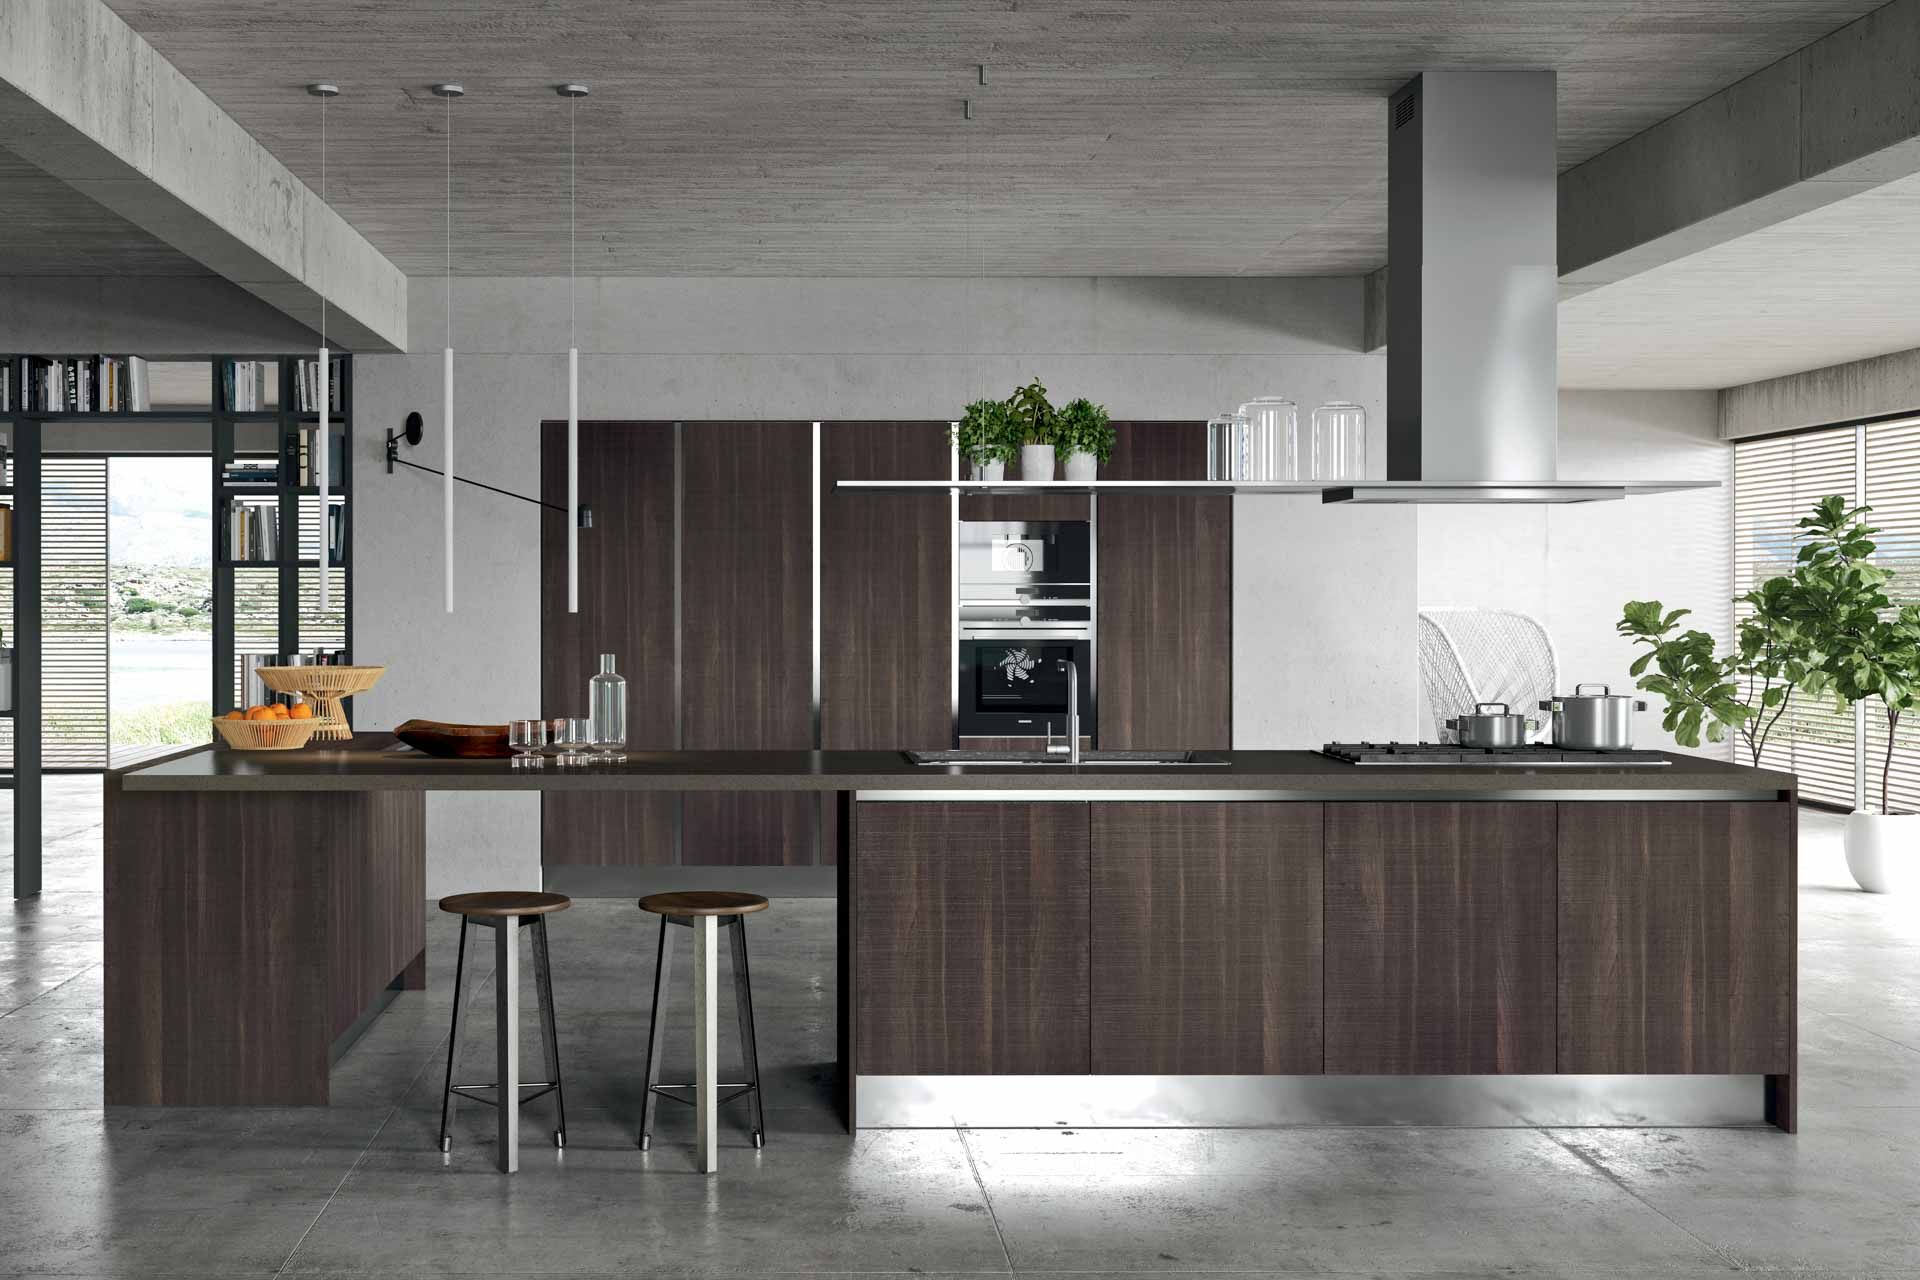 Italian Kitchen Cabinets Design Italian Kitchen Cabinets | European Cabinets & Design Studios